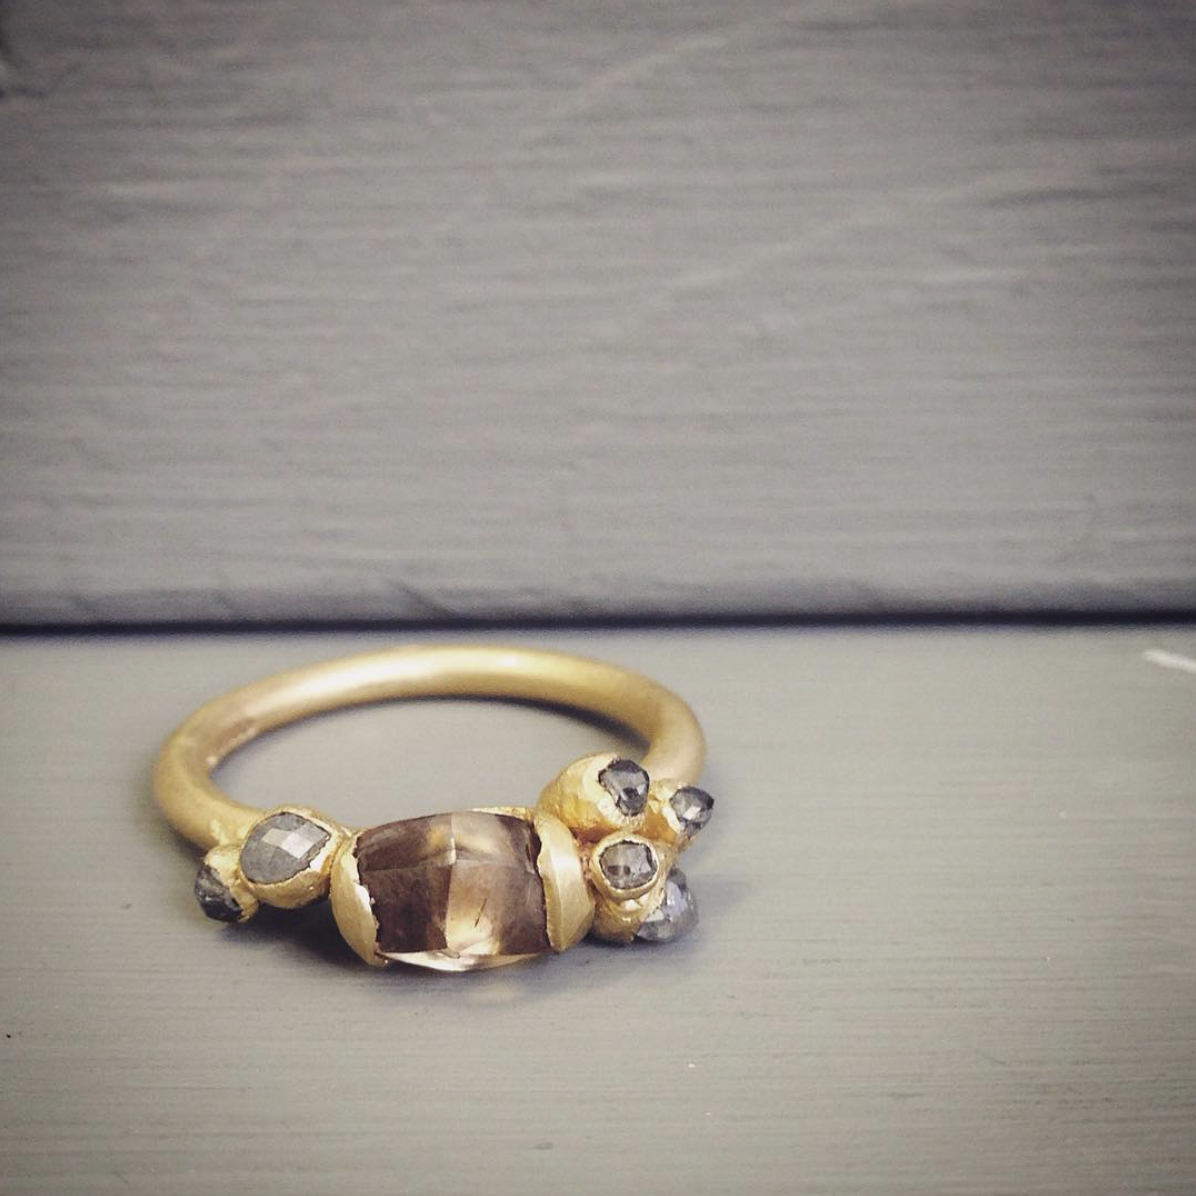 Raw Diamond Ring - first fine jewellery piece I made was this design many years ago.png